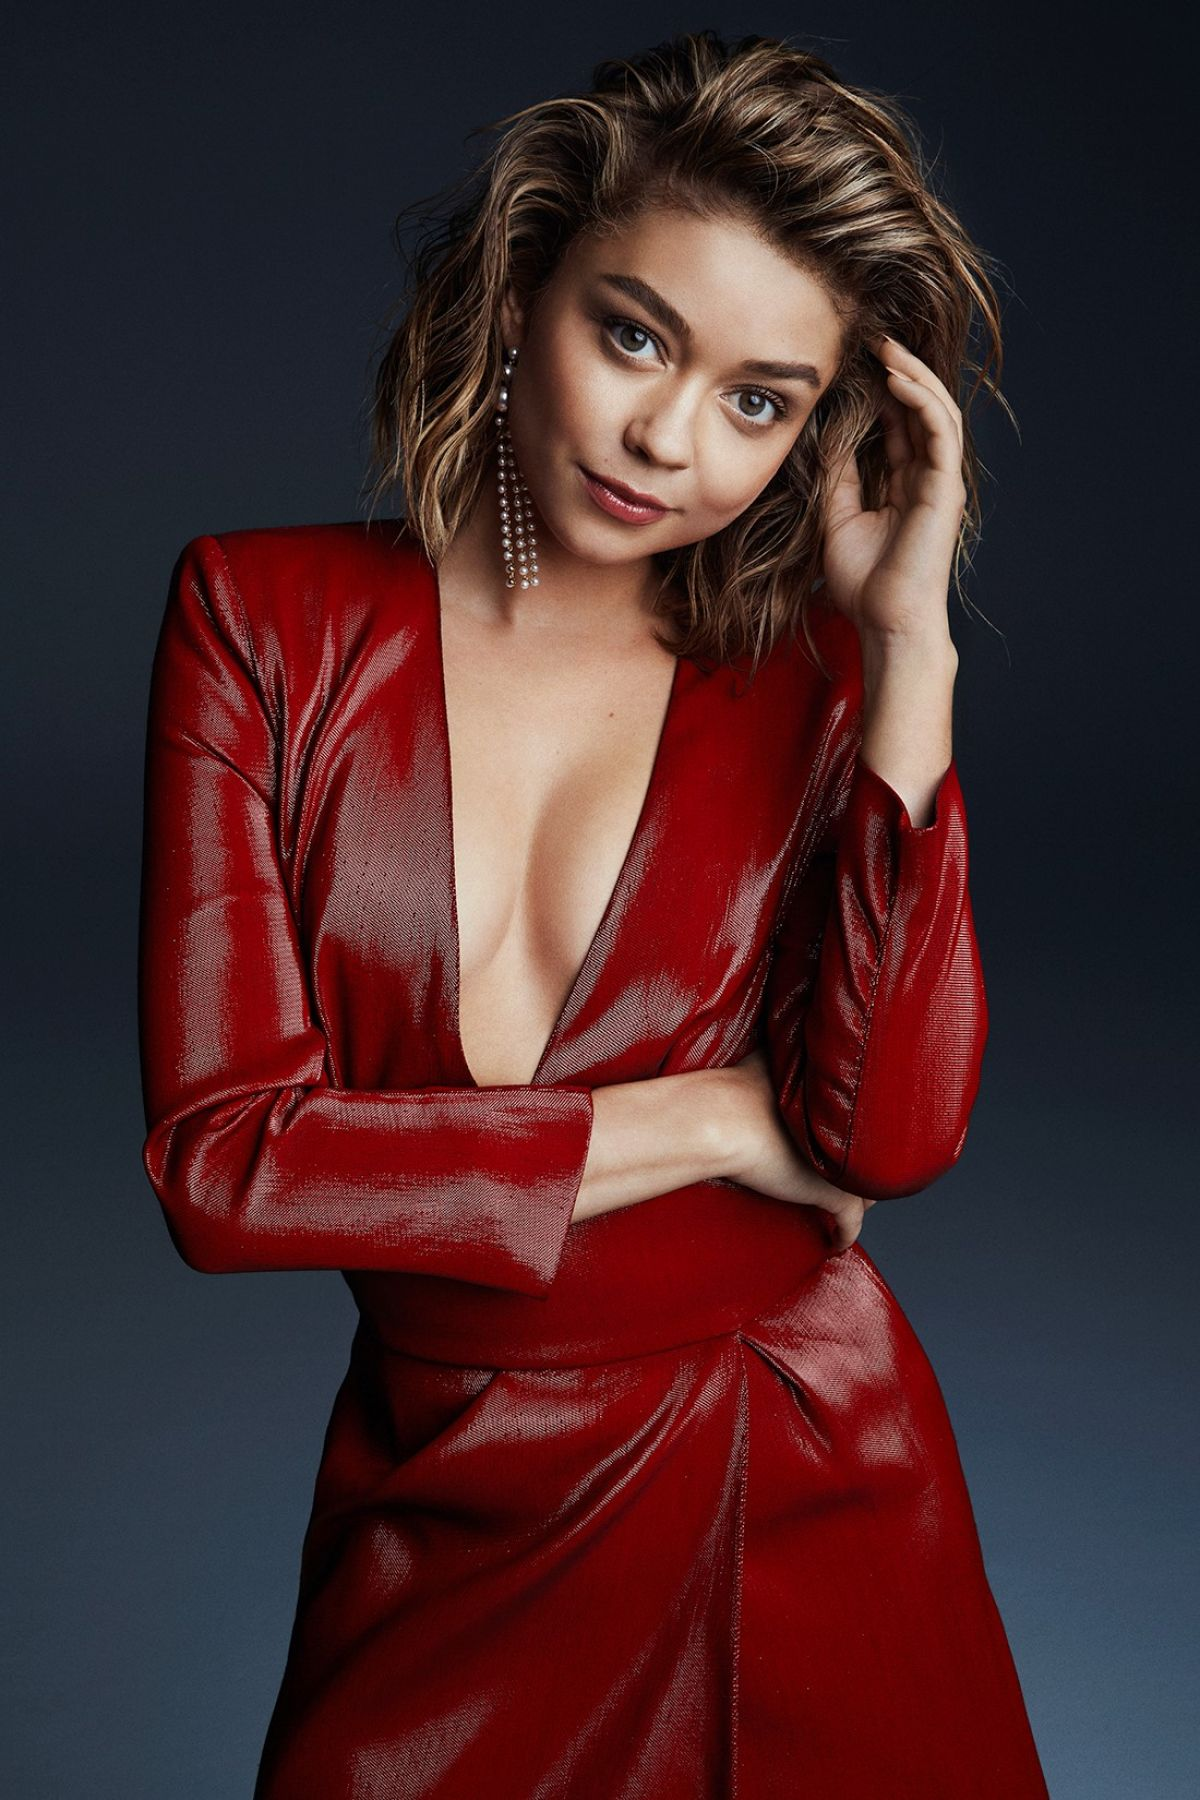 SARAH HYLAND for Marie Claire ID, 2016